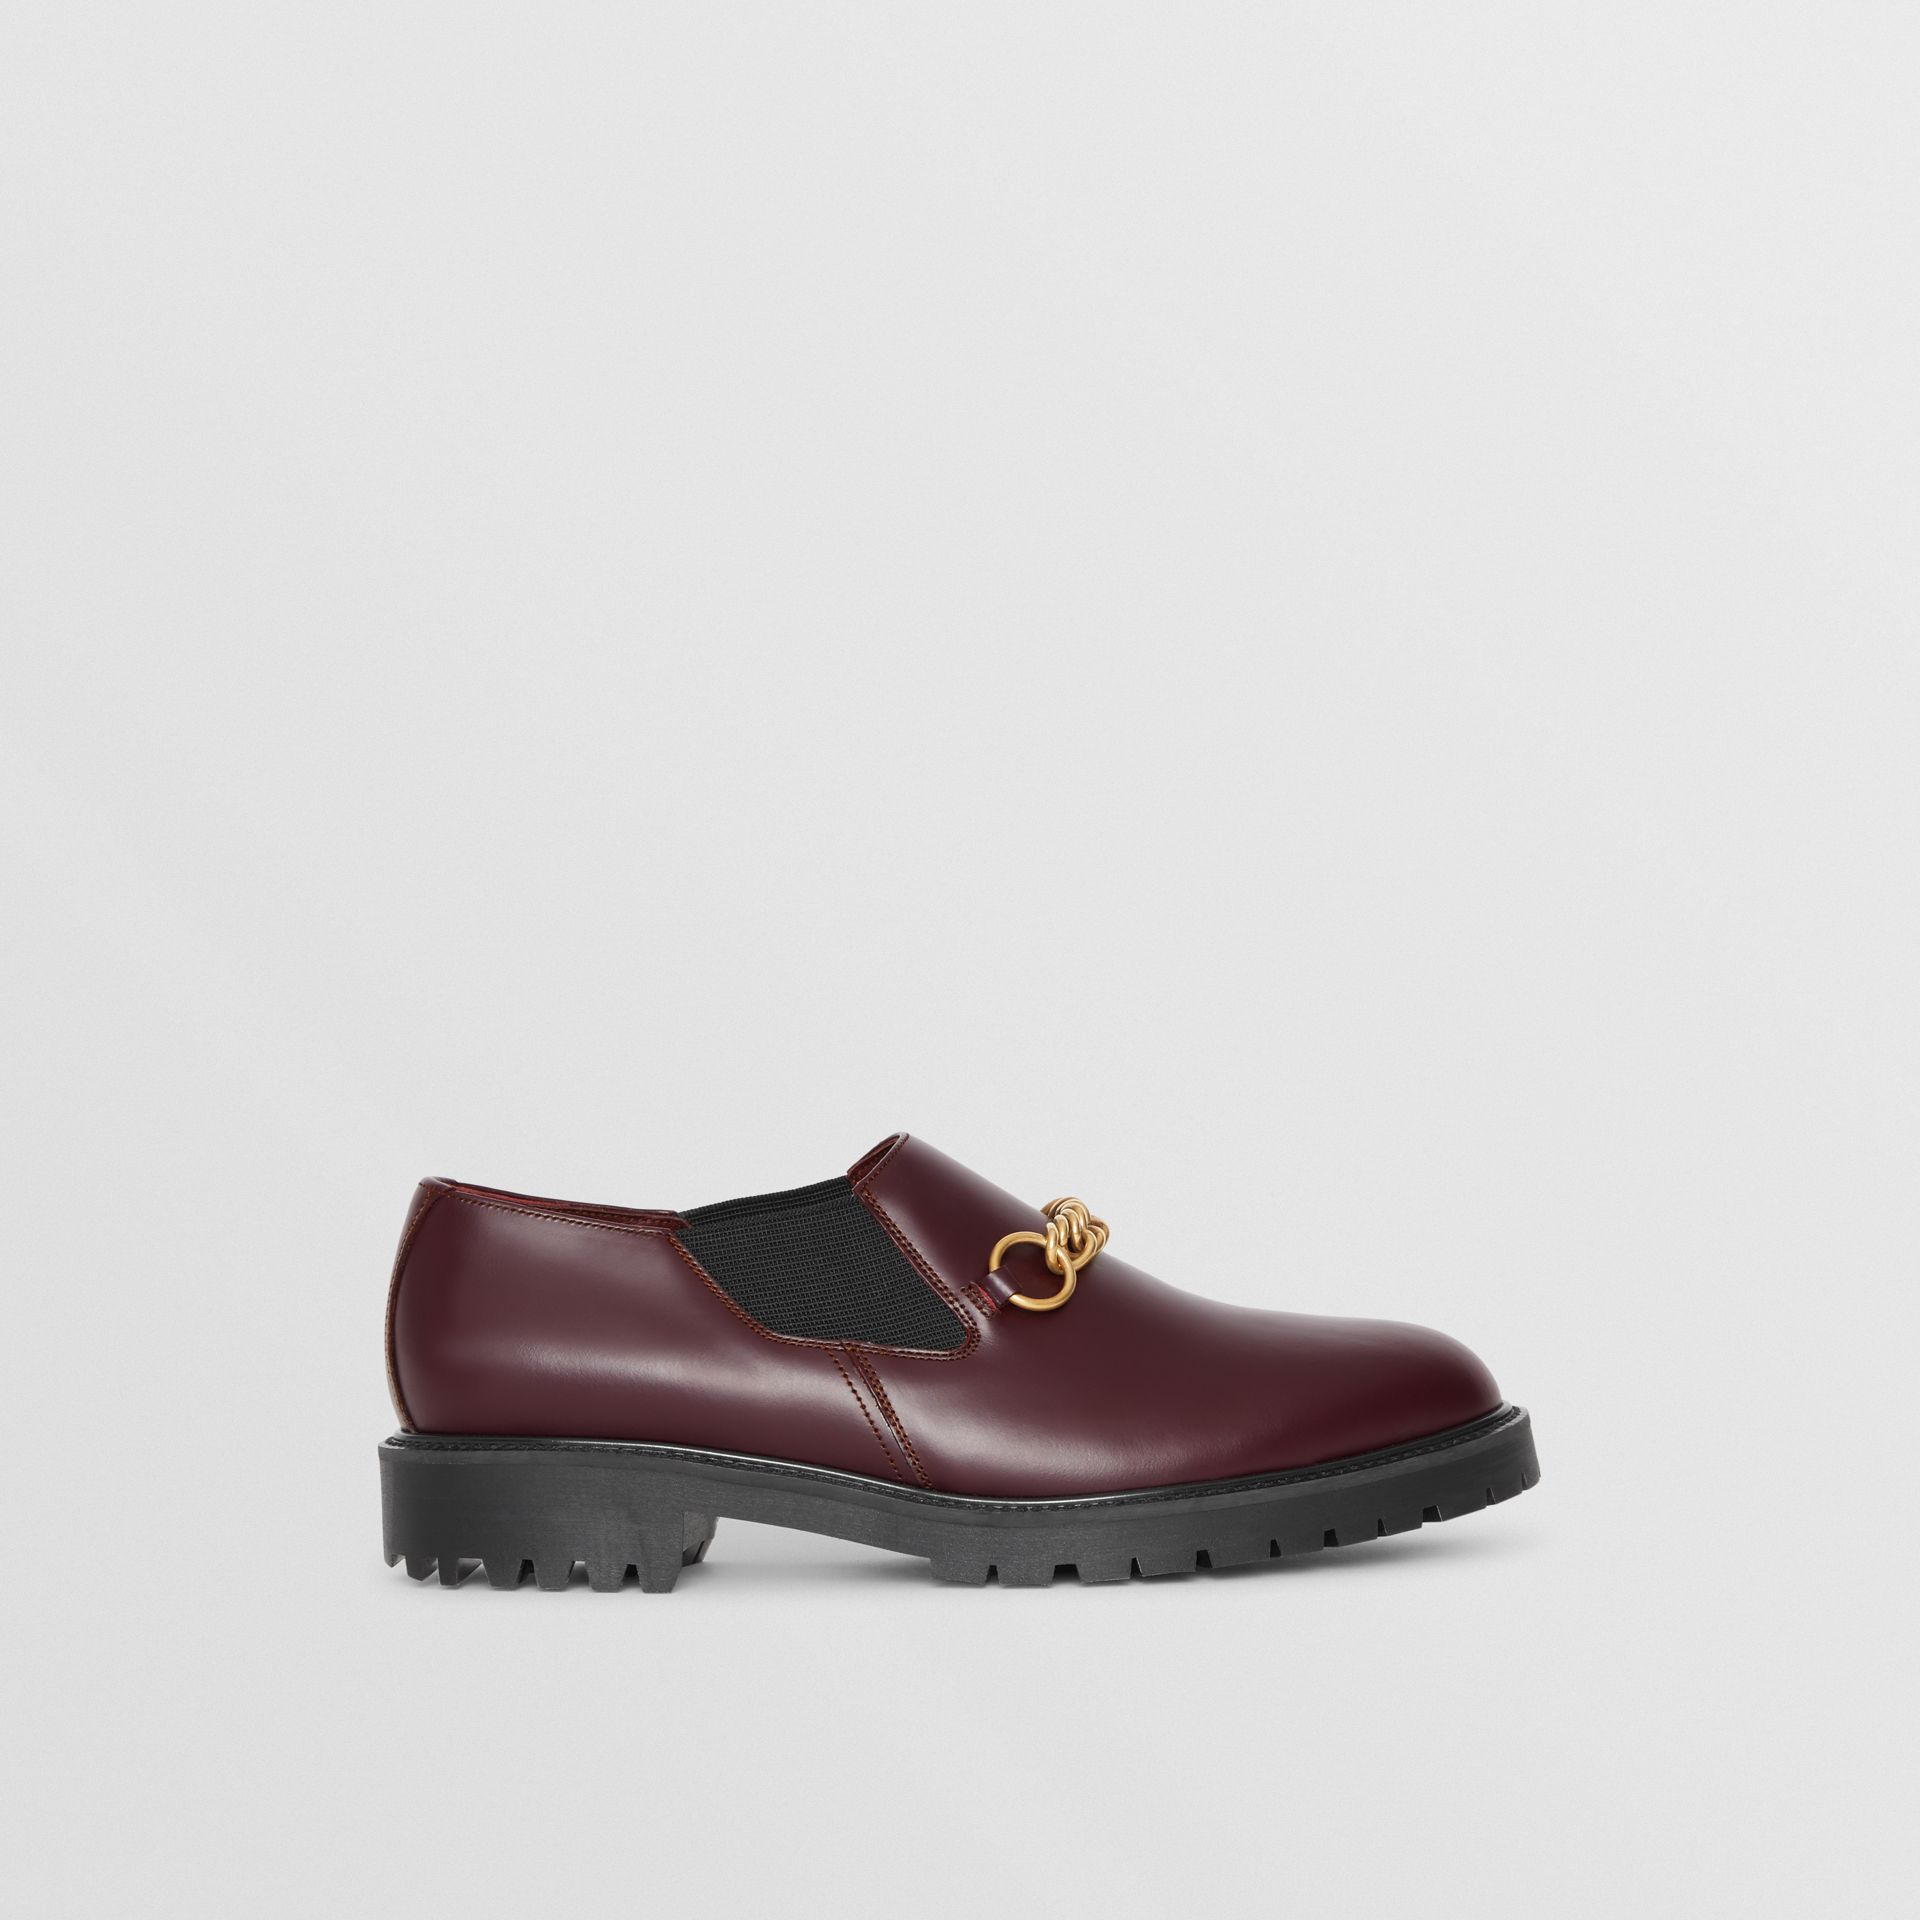 Link Detail Leather Shoe in Oxblood - Men | Burberry Hong Kong - gallery image 4